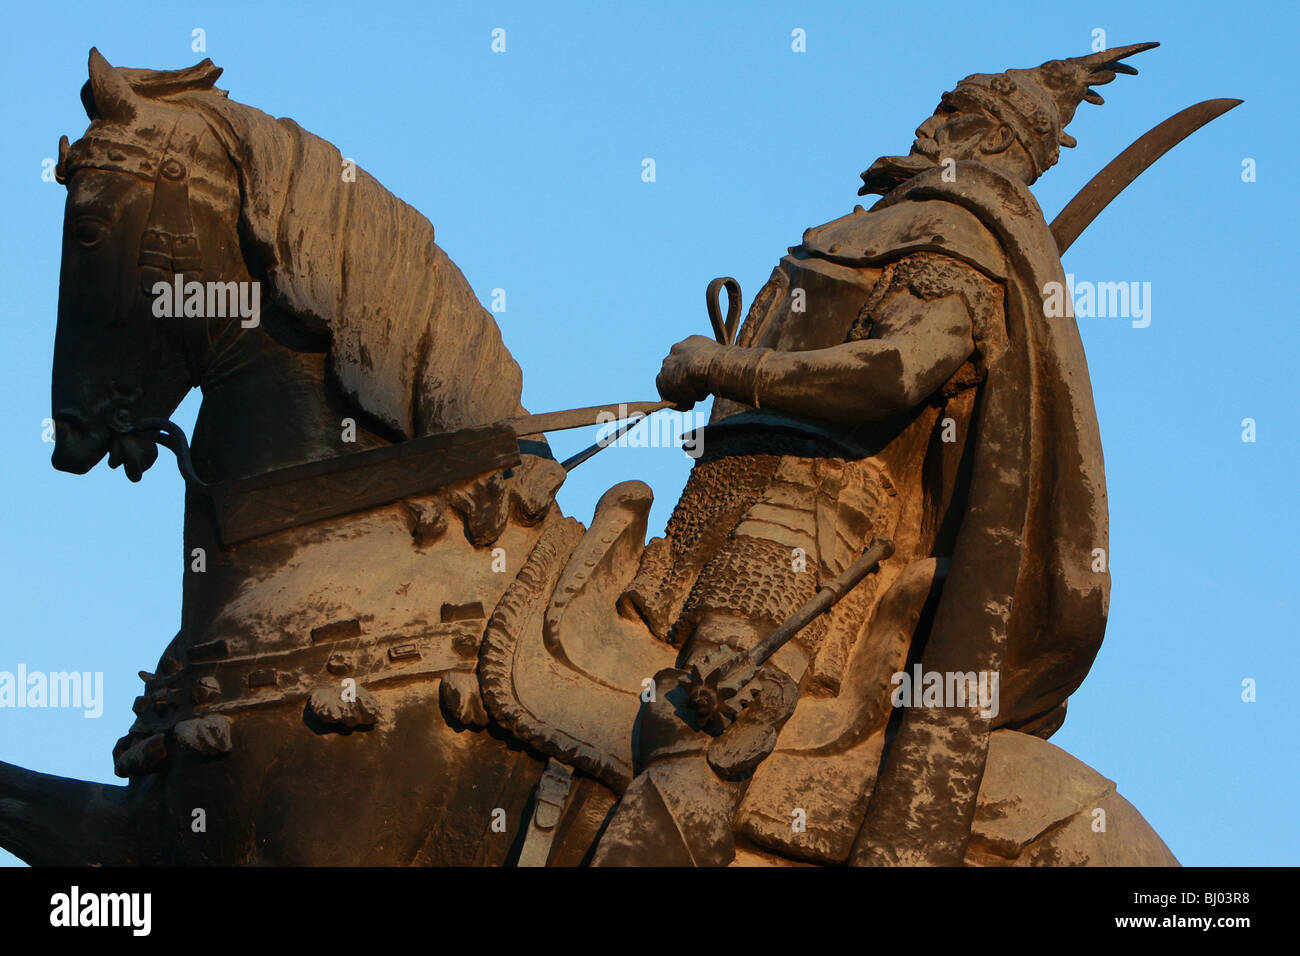 Statue of Skanderbeg, Tirana, Albania, Europe Stock Photo